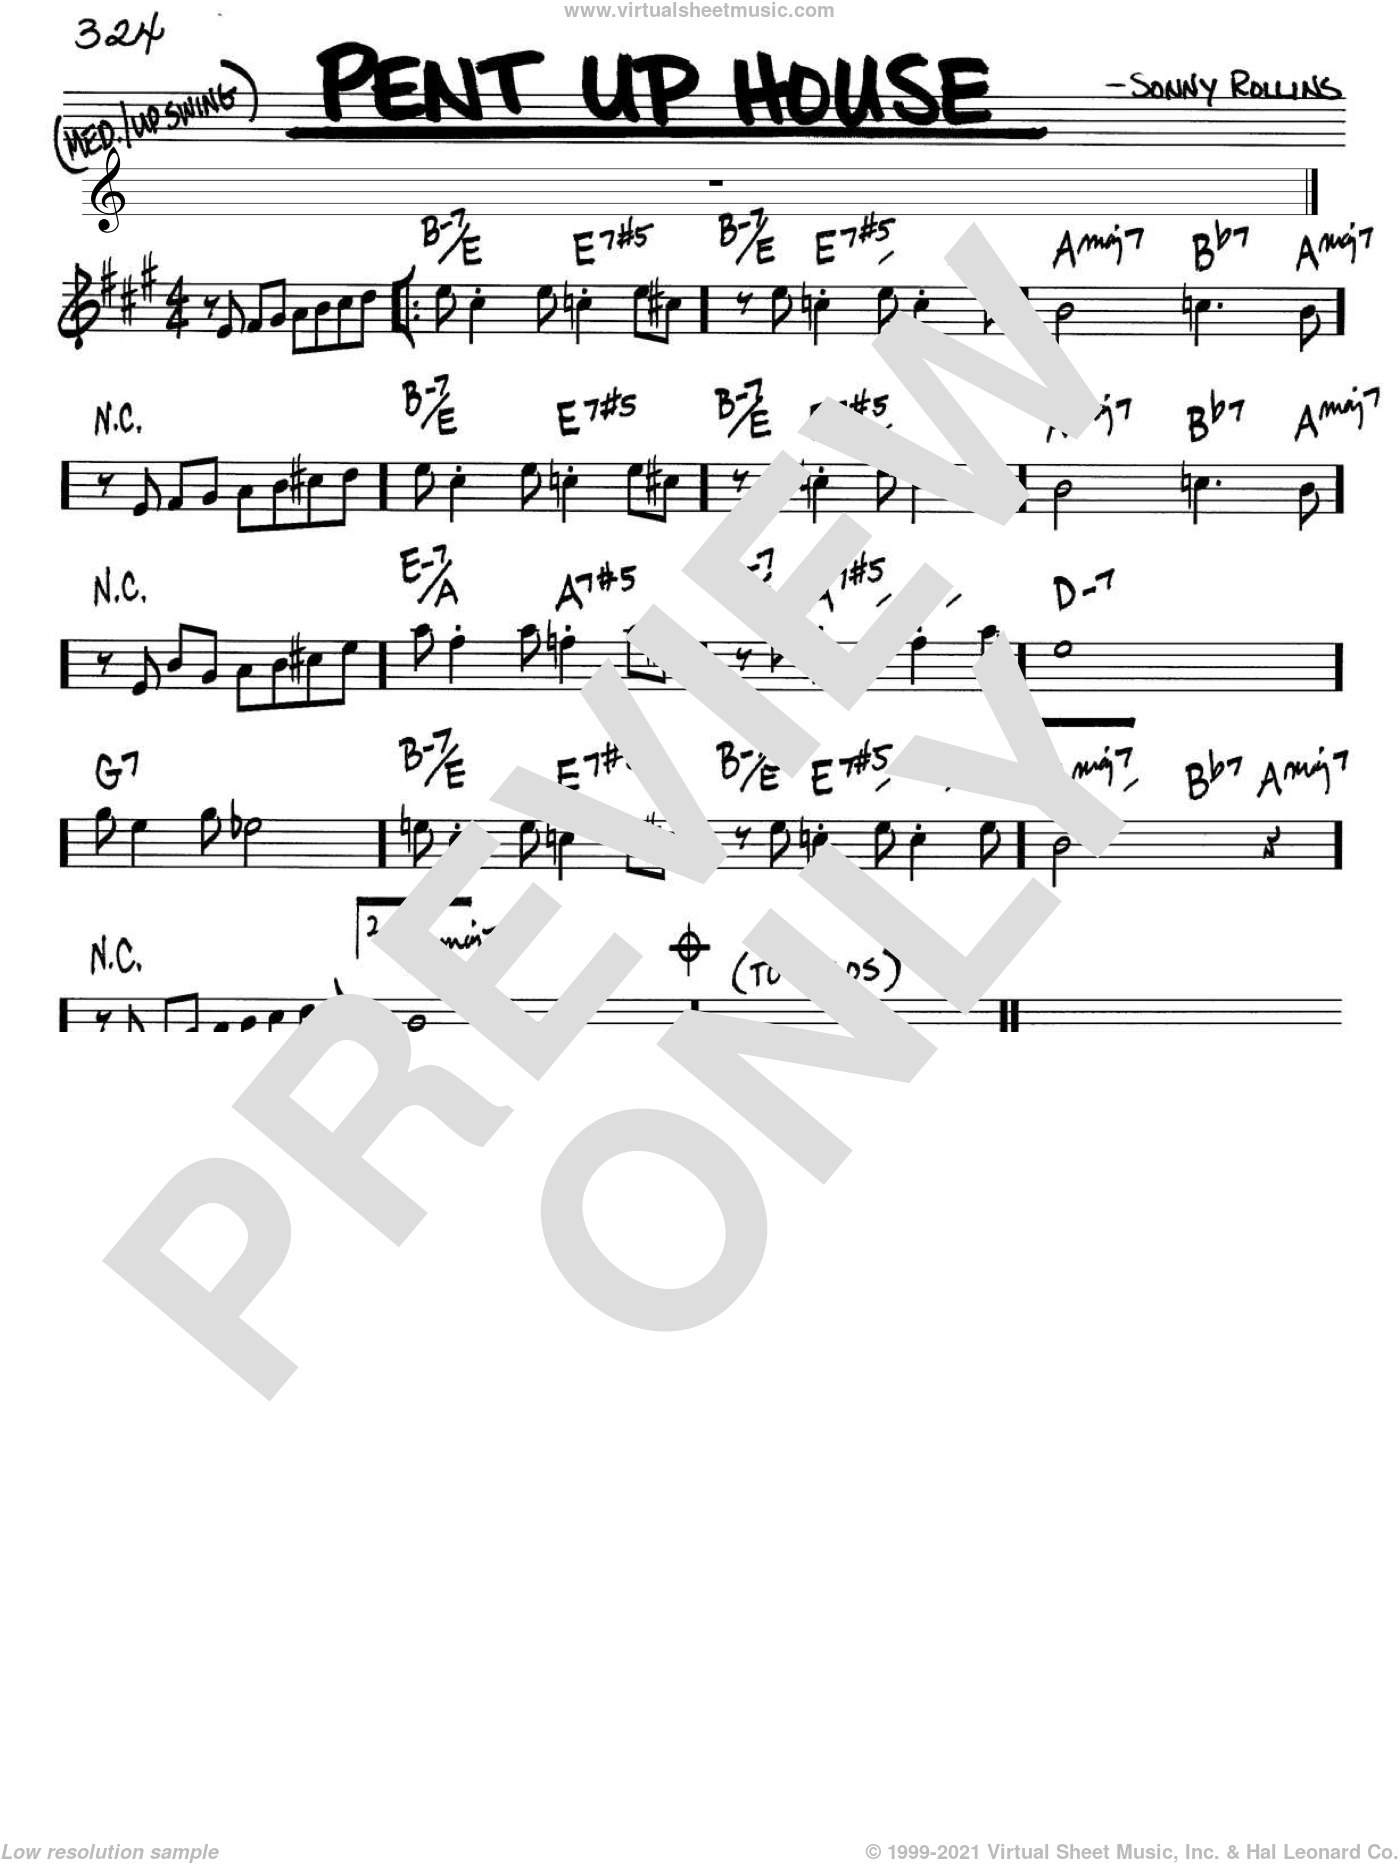 Pent Up House sheet music for voice and other instruments (Bb) by Sonny Rollins